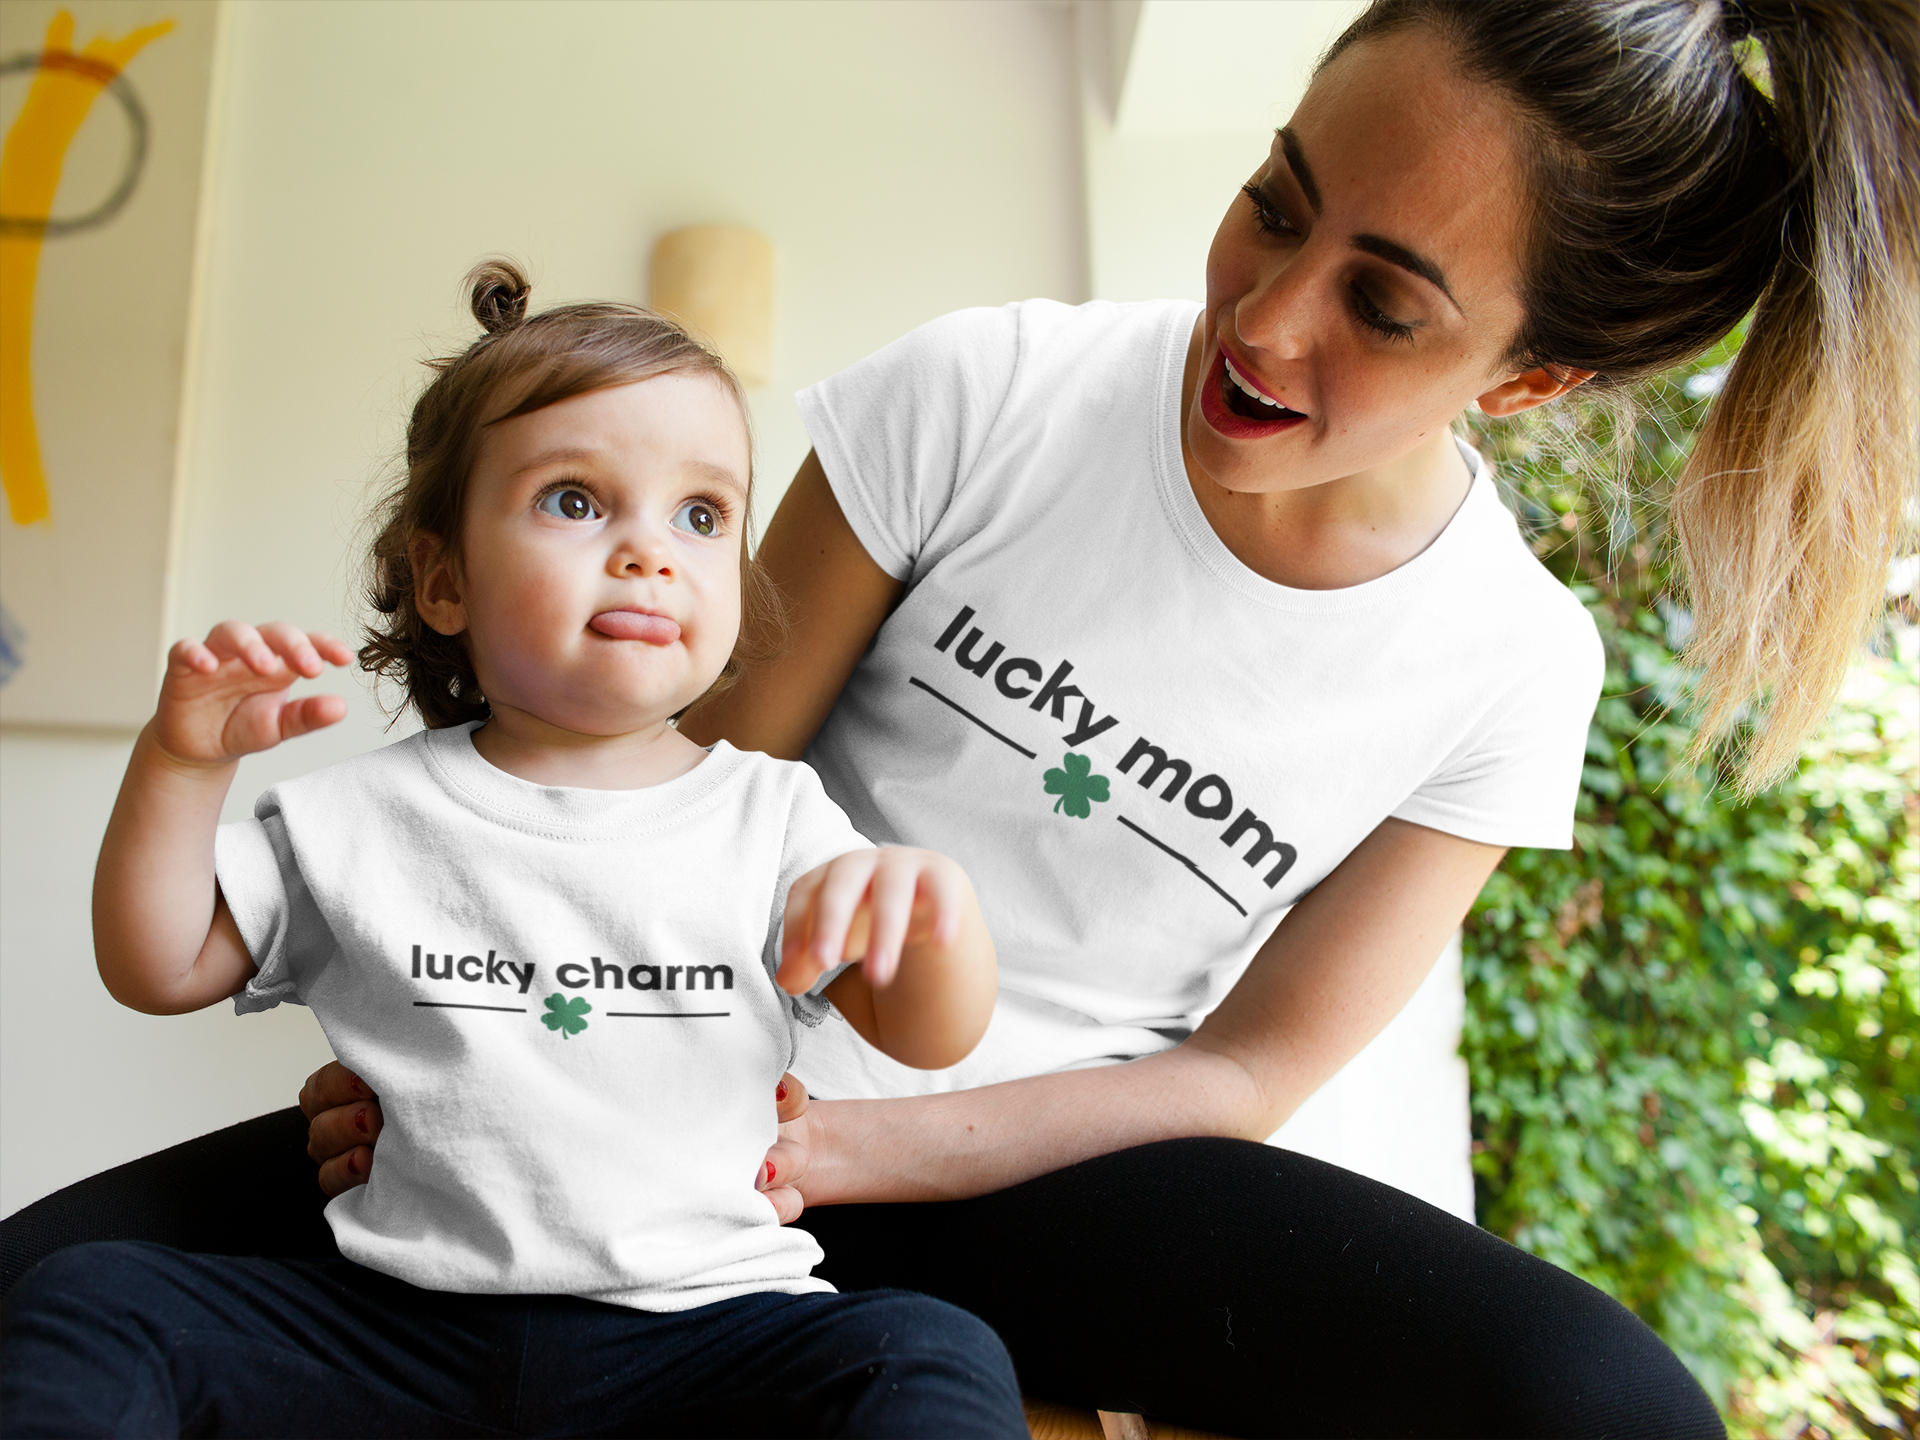 LUCKY CHARM UNISEX HIGH QUALITY SHIRT - SIZES (S - 2XL)